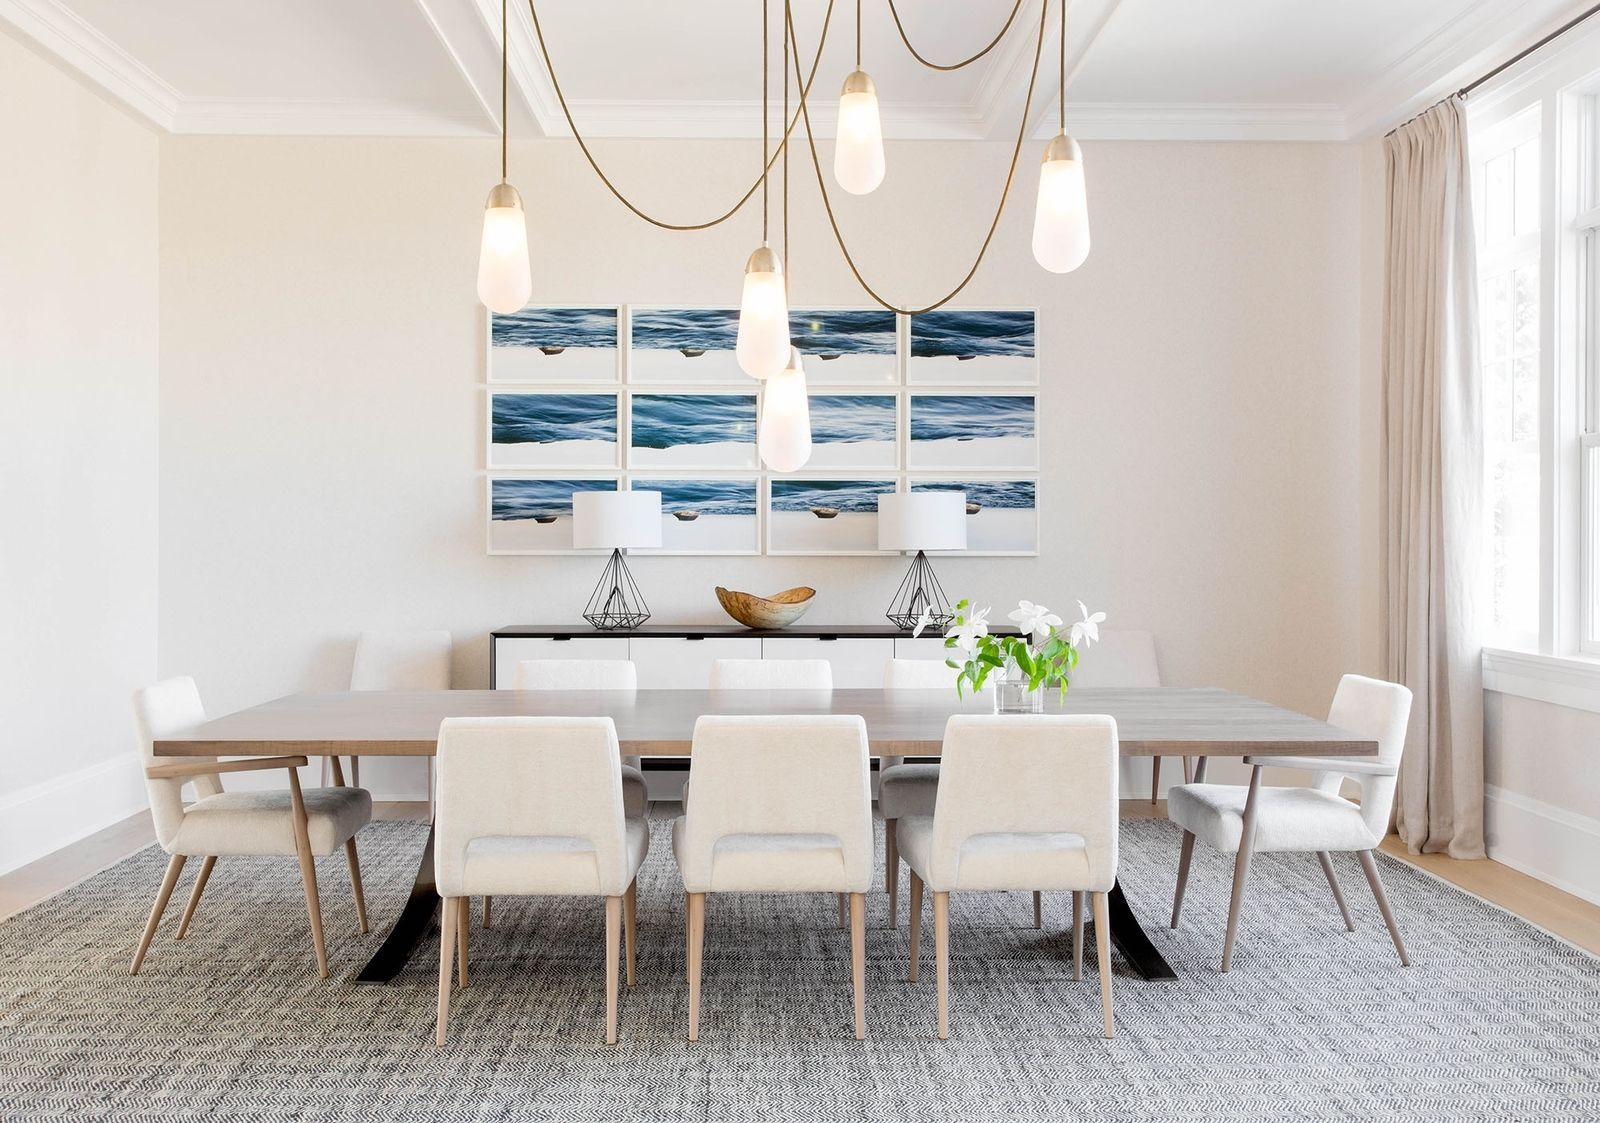 This sophisticated hamptons home masters beachy minimalism without